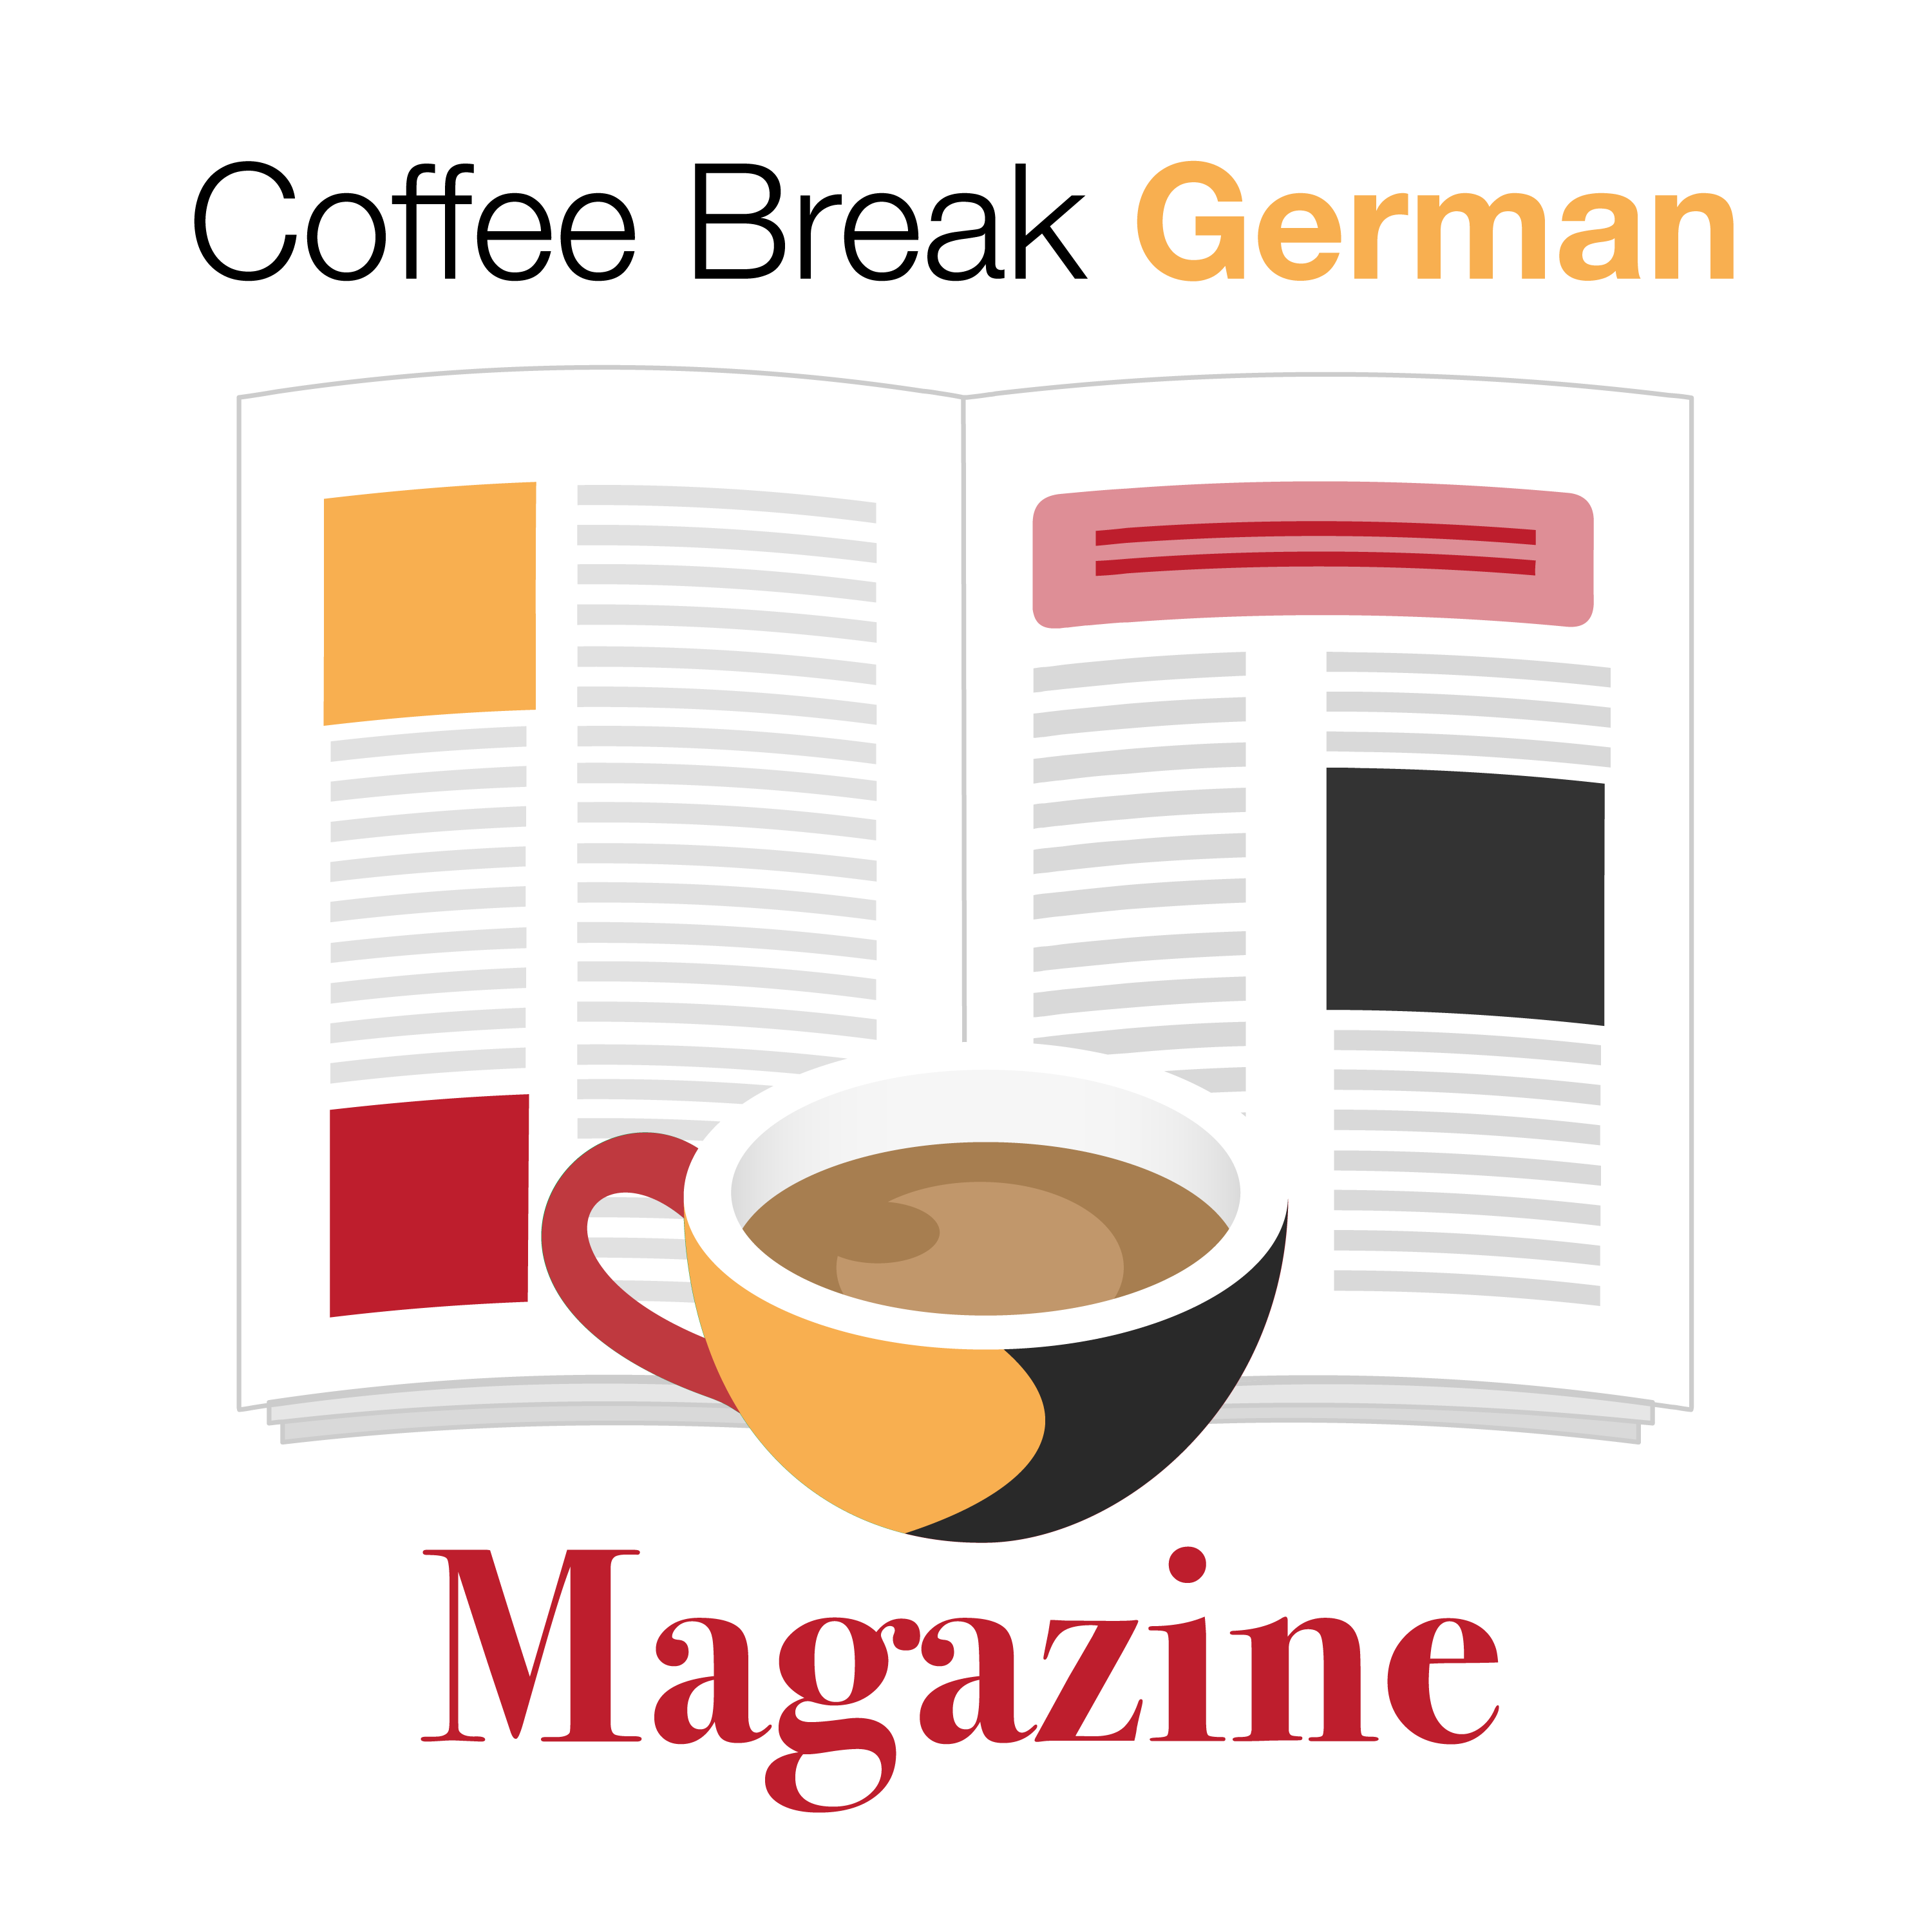 Coming soon: the Coffee Break German Magazine